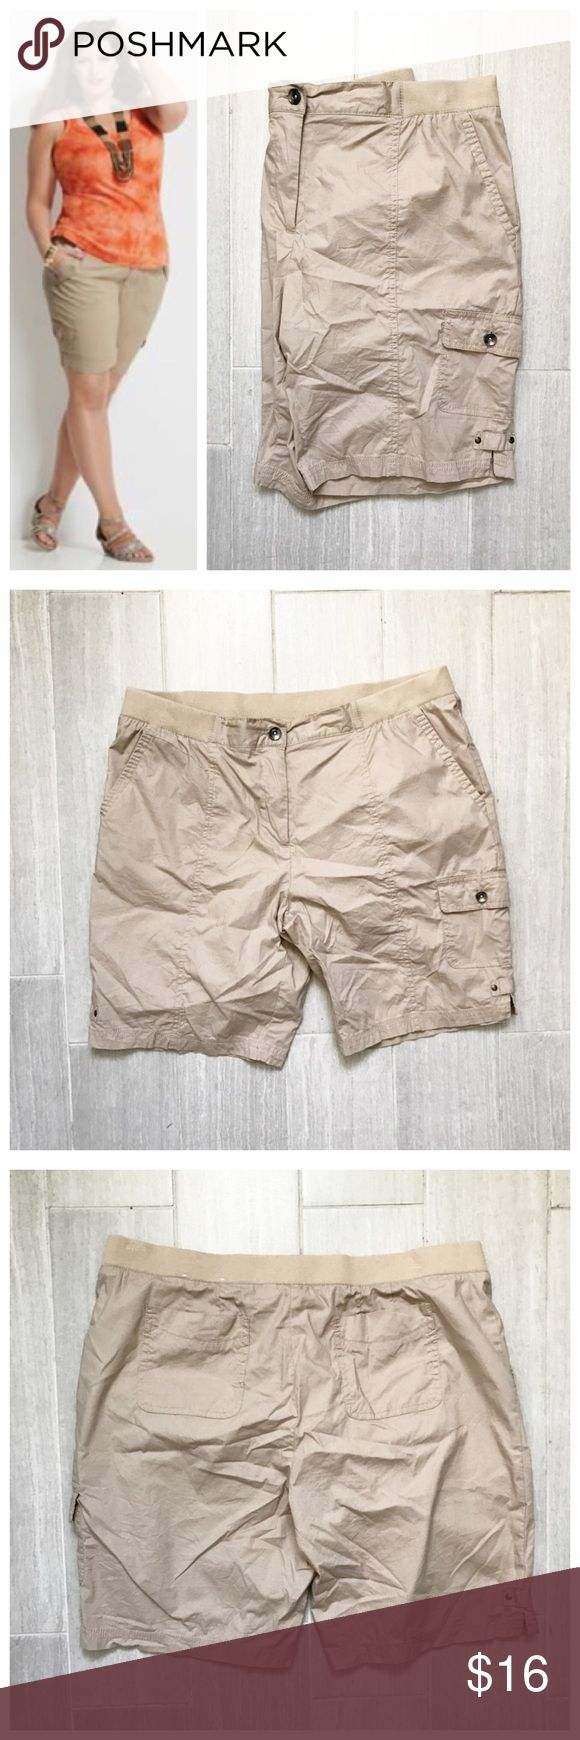 Beige Shorts Beige / tan shorts. Rafaella Sport. Stretch to waist band. Pockets. First photo on left not actual item just showing for style! BUNDLES 20% OFF 🎉 Rafaella Shorts